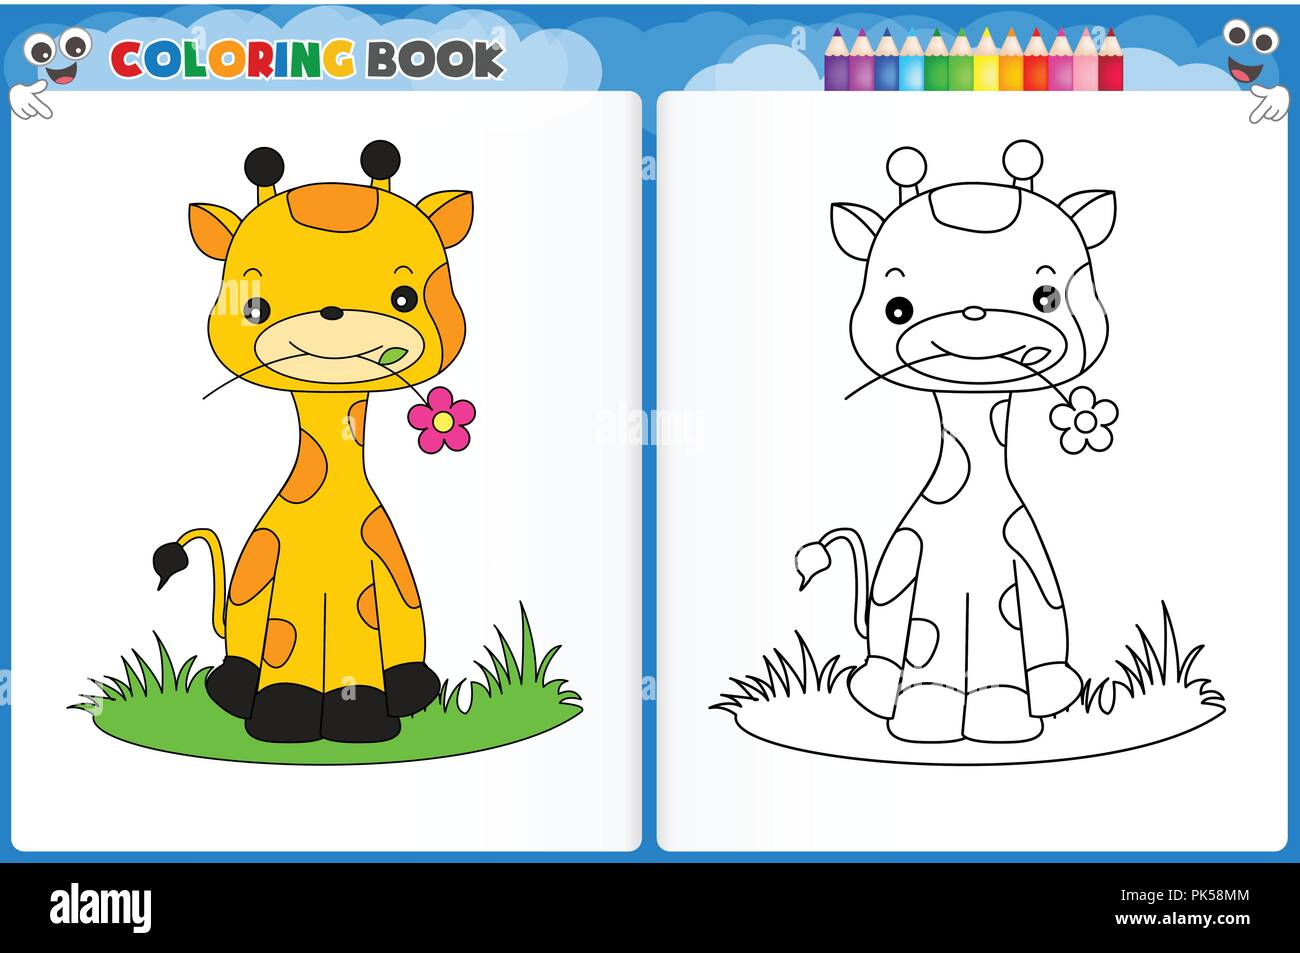 Coloring Page Cute Giraffe With Colorful Sample Printable